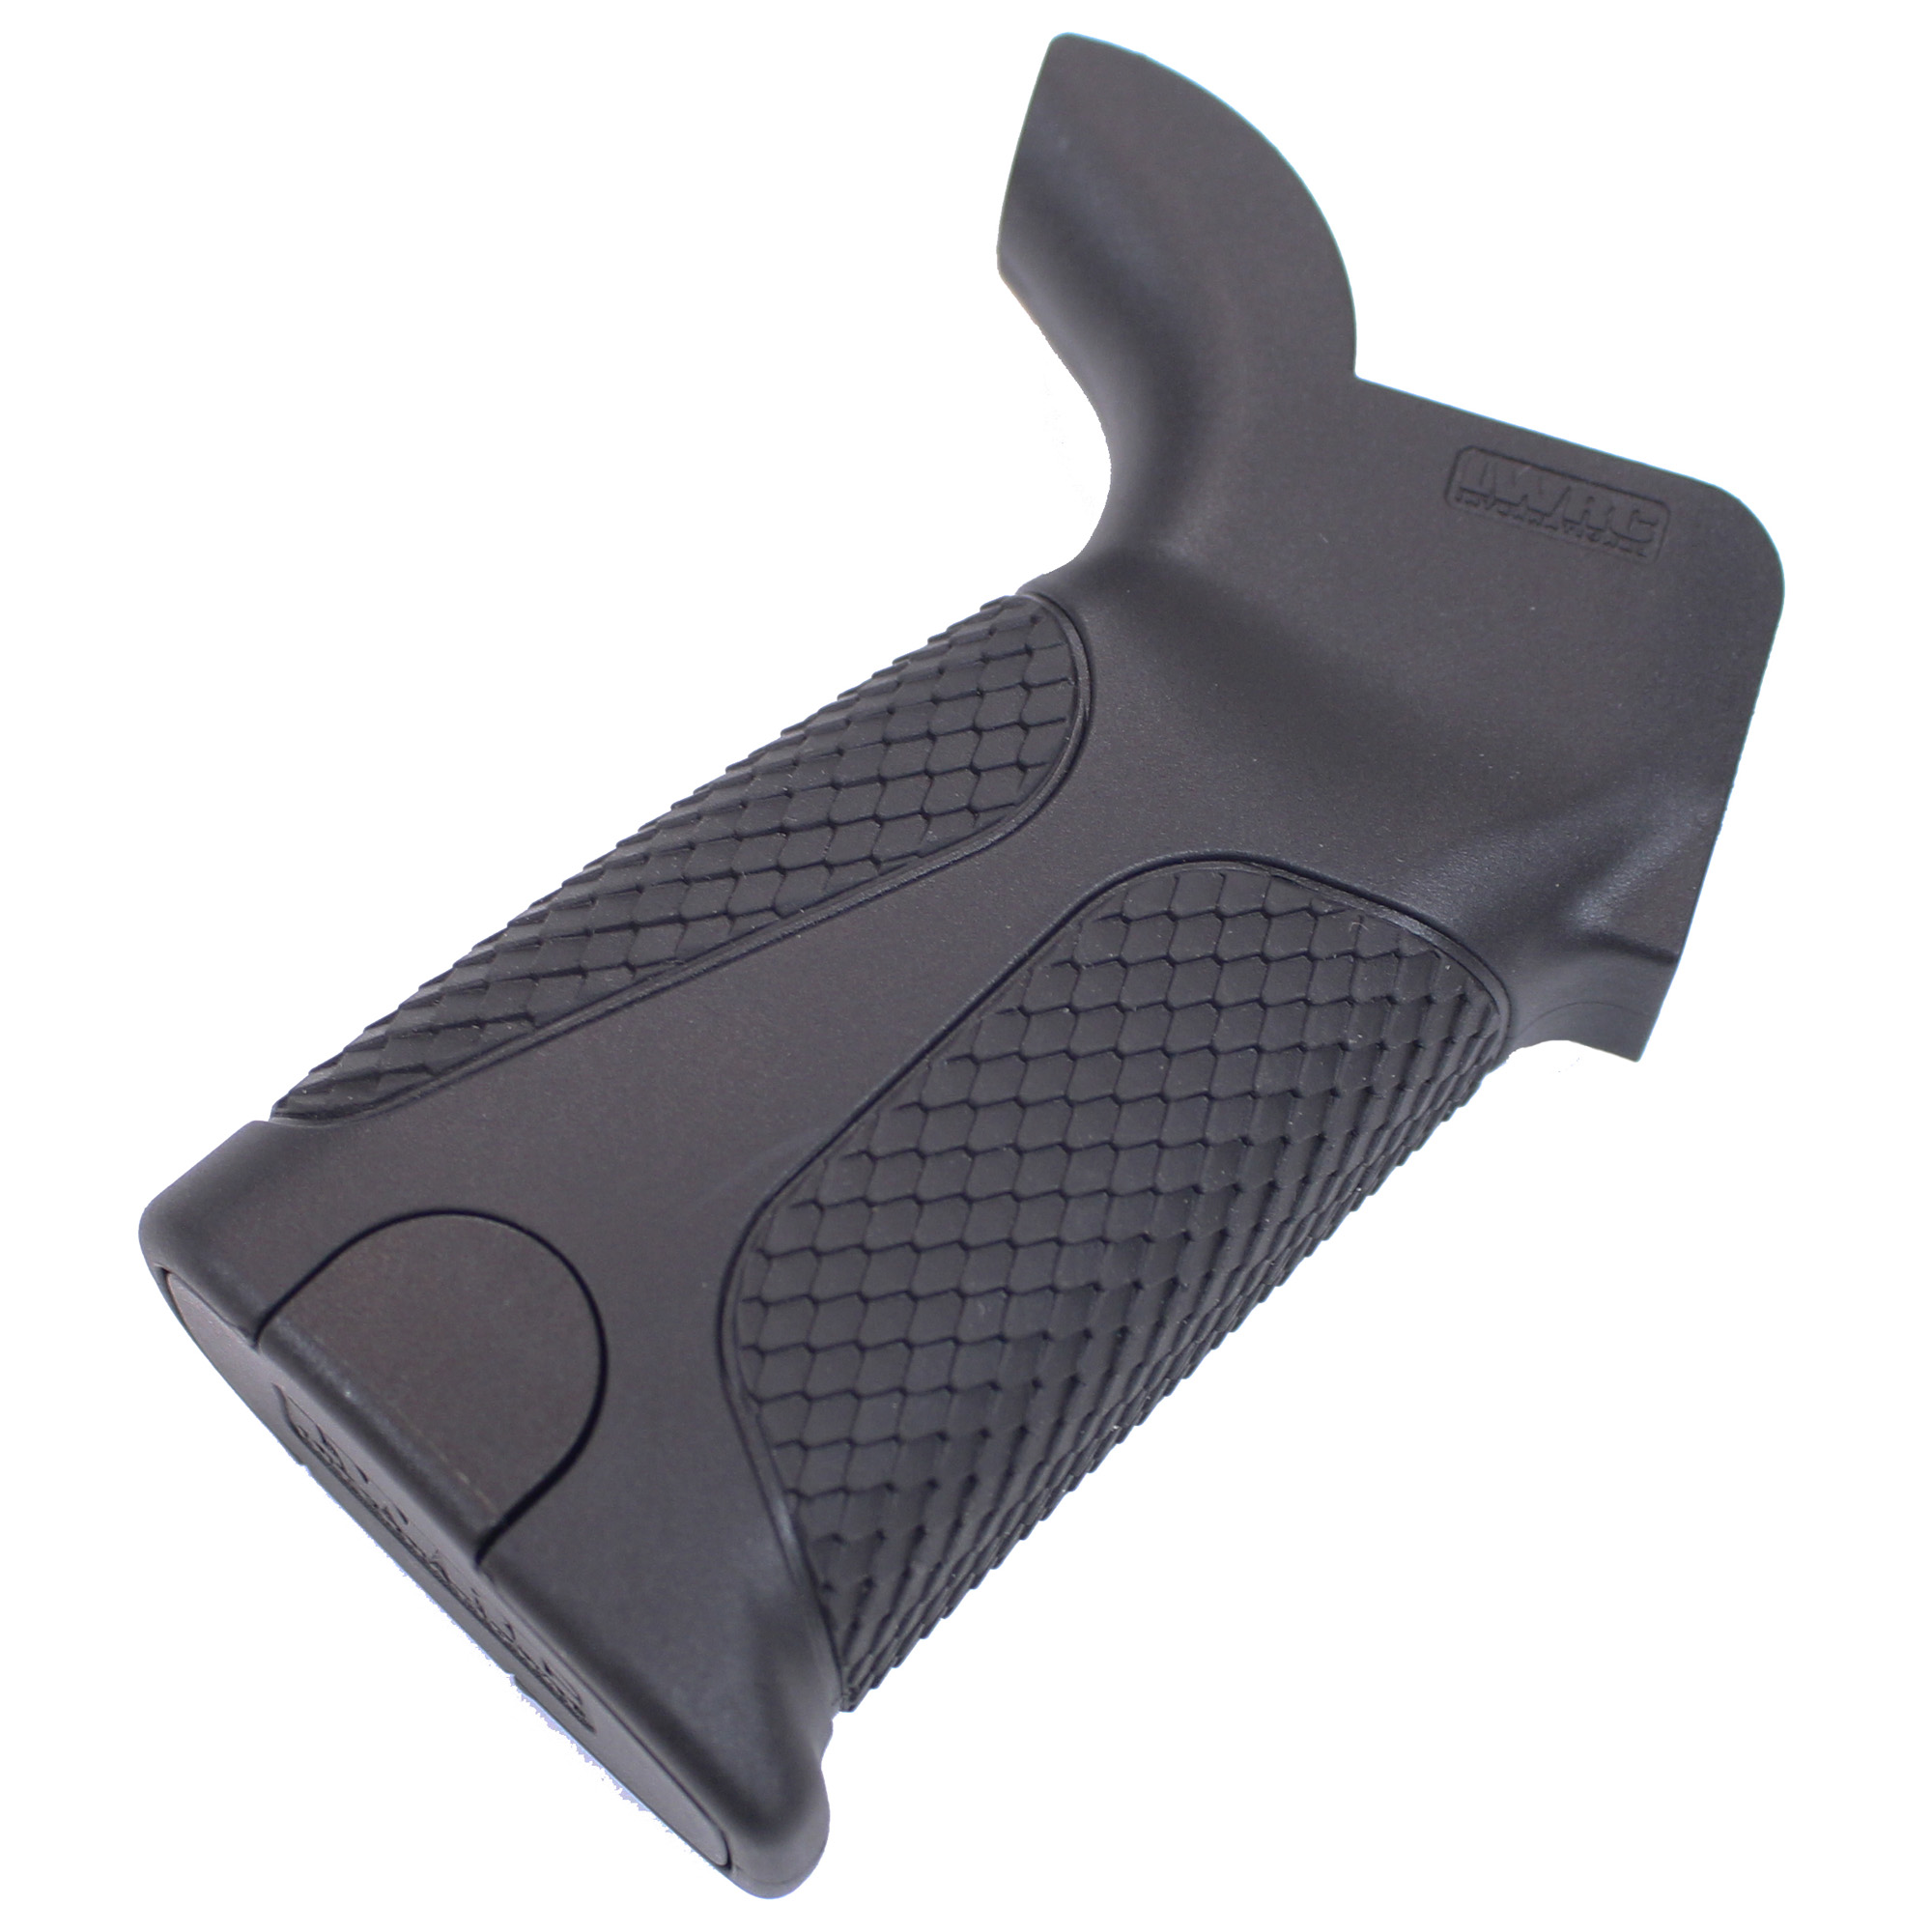 This Ultra Combat pistol grip is an enhanced grip for your next build or to update your current LWRCI rifle. Its ergonomic design features over-molded snakeskin panels for superior grip and feel.